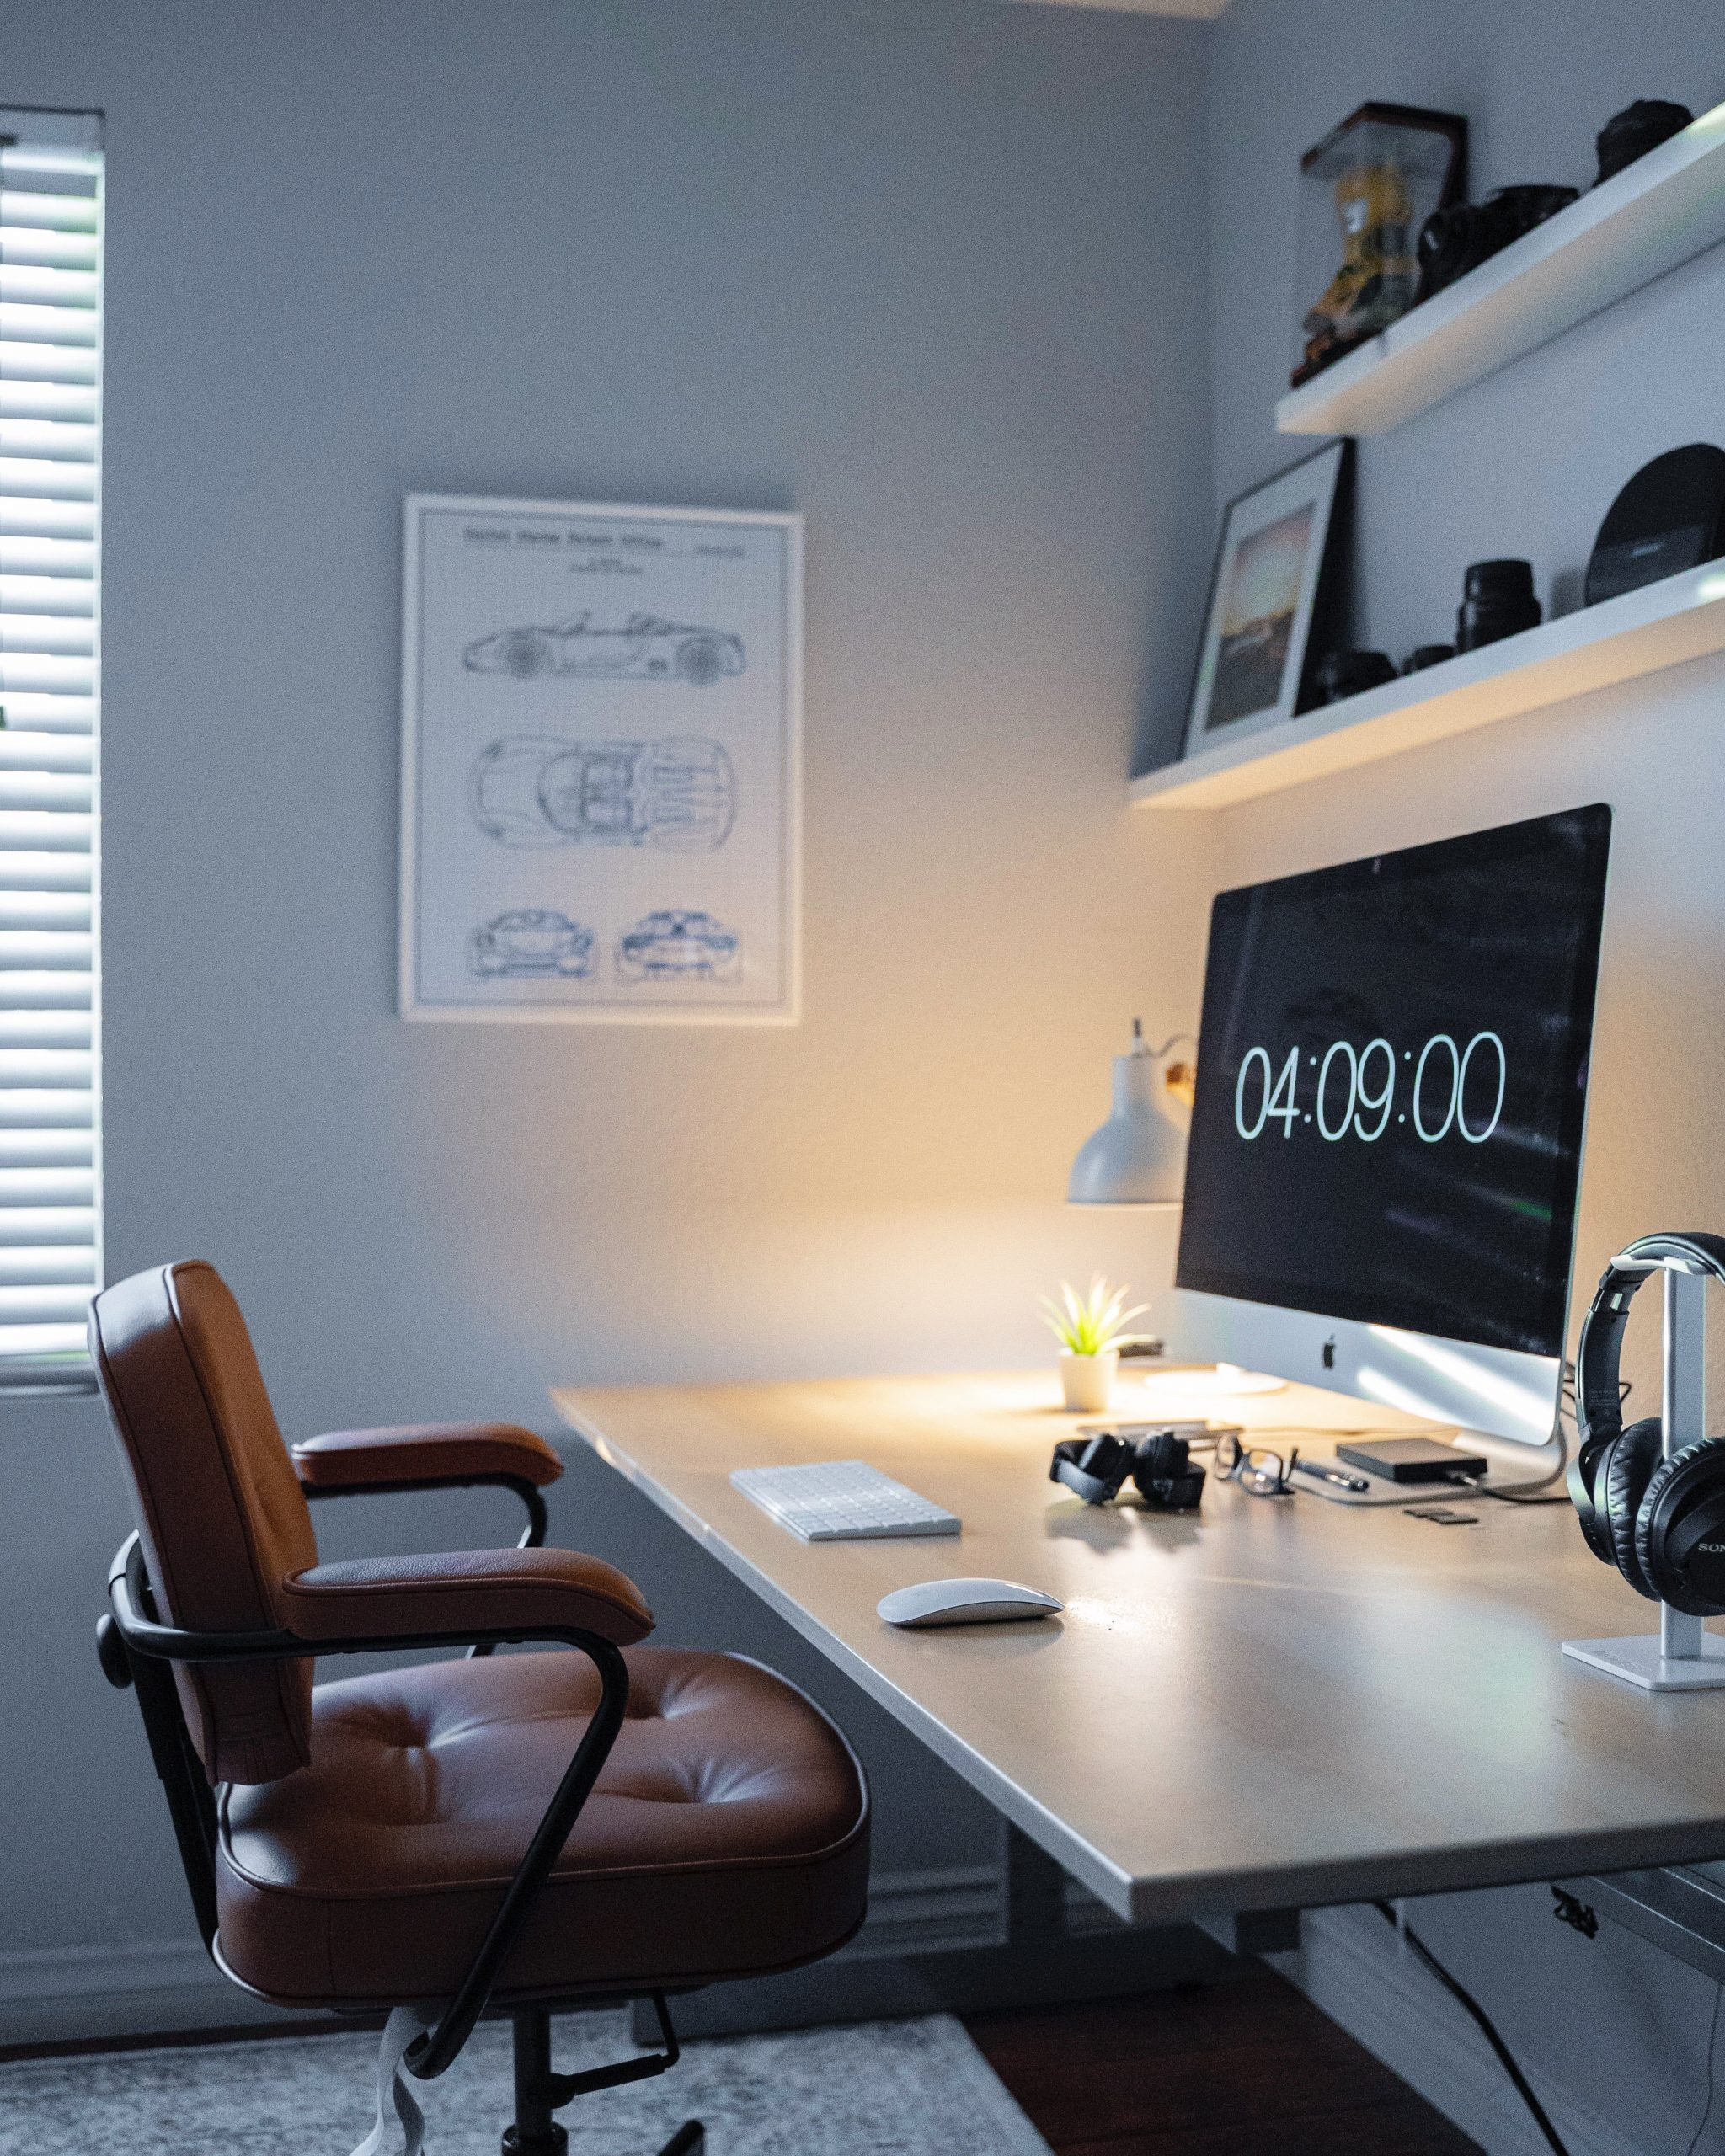 How to make better your workspace for work from home